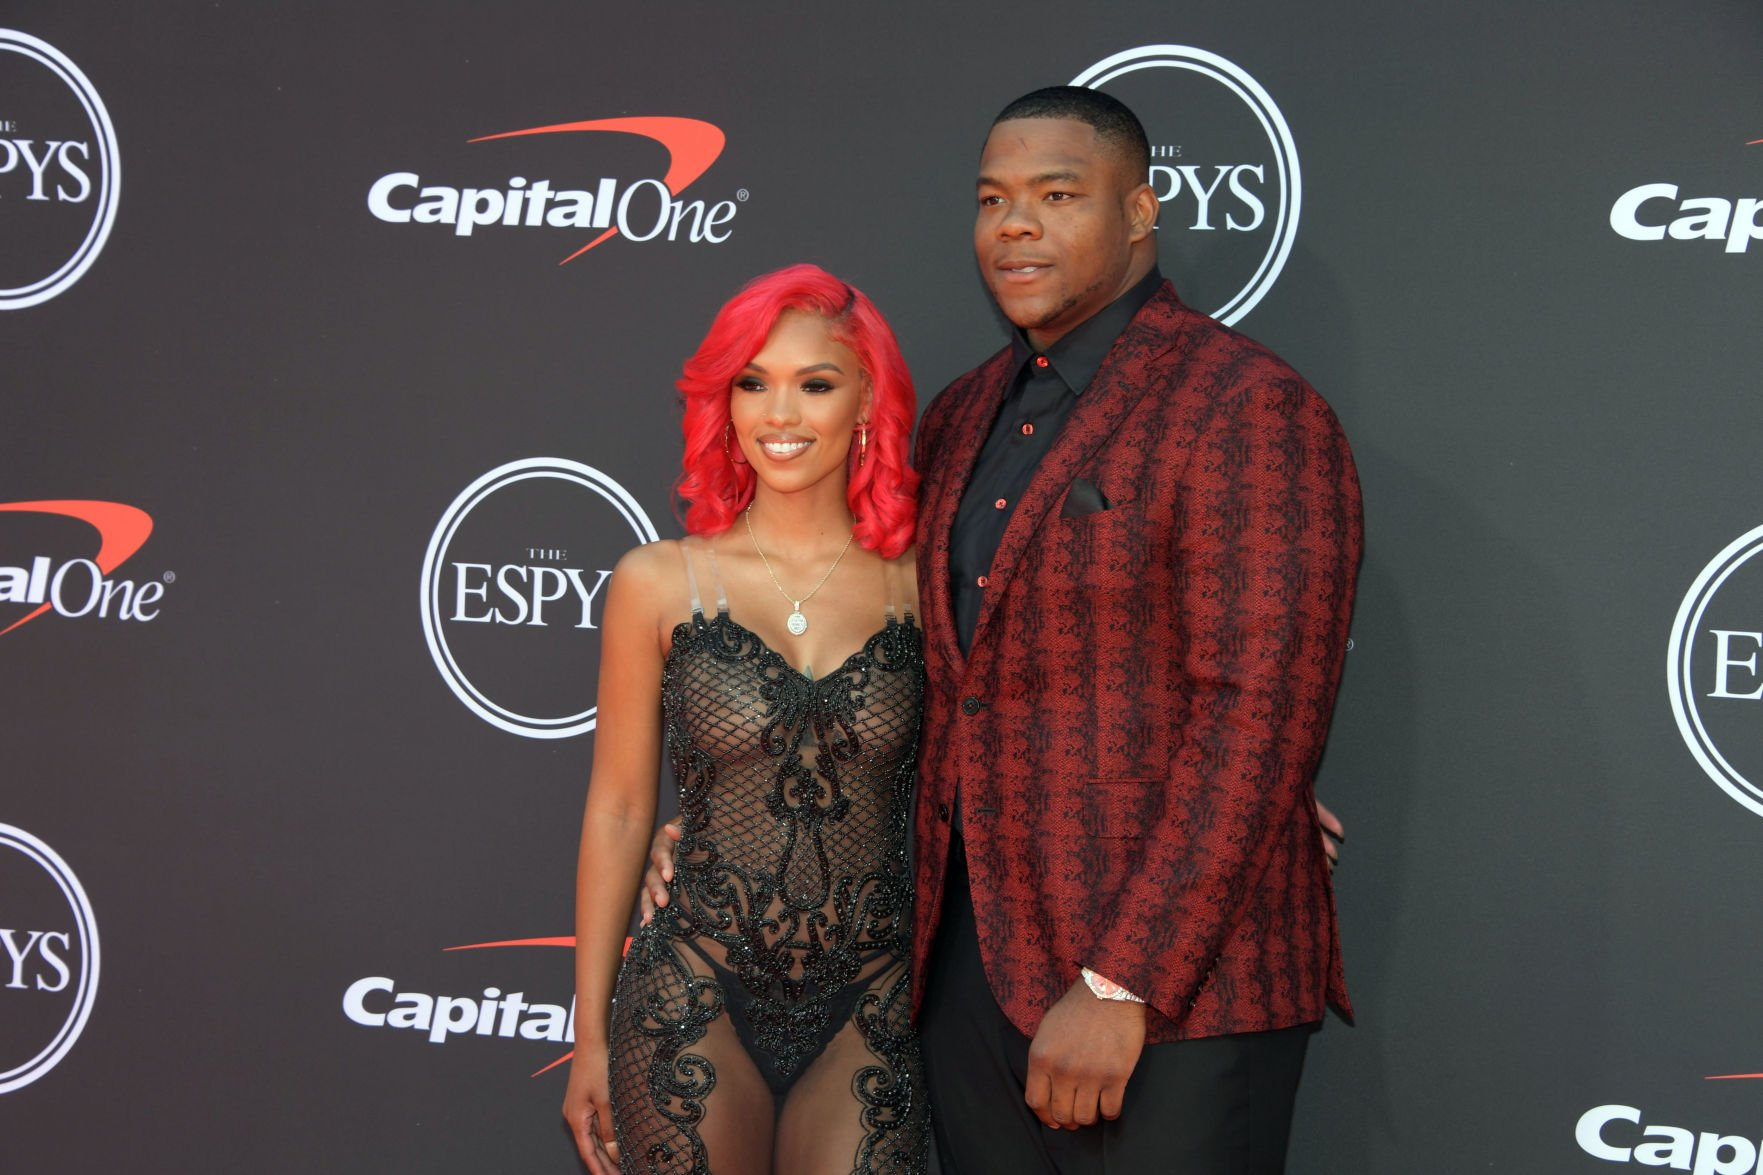 News: The ESPYS-Red Carpet